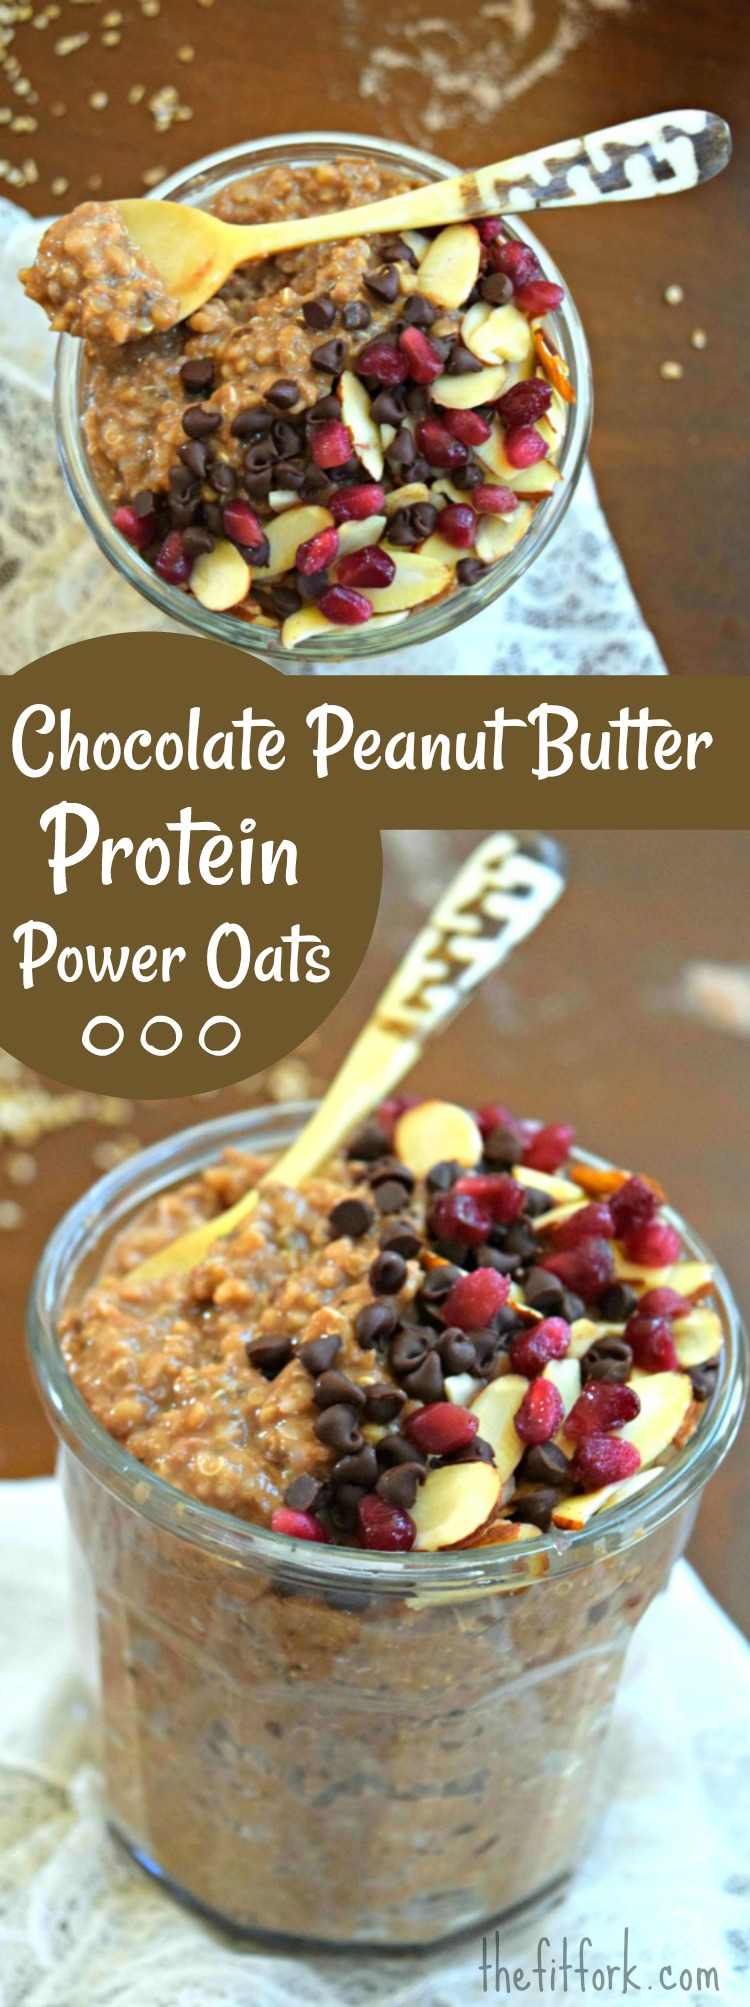 Chocolate Peanut Butter Protein Power Oats is an easy make-ahead breakfast with 22 grams of protein, 7 grams of fiber, and lots of healthy complex whole grain carbs and omega fats to fuel fitness and an active lifestyle.